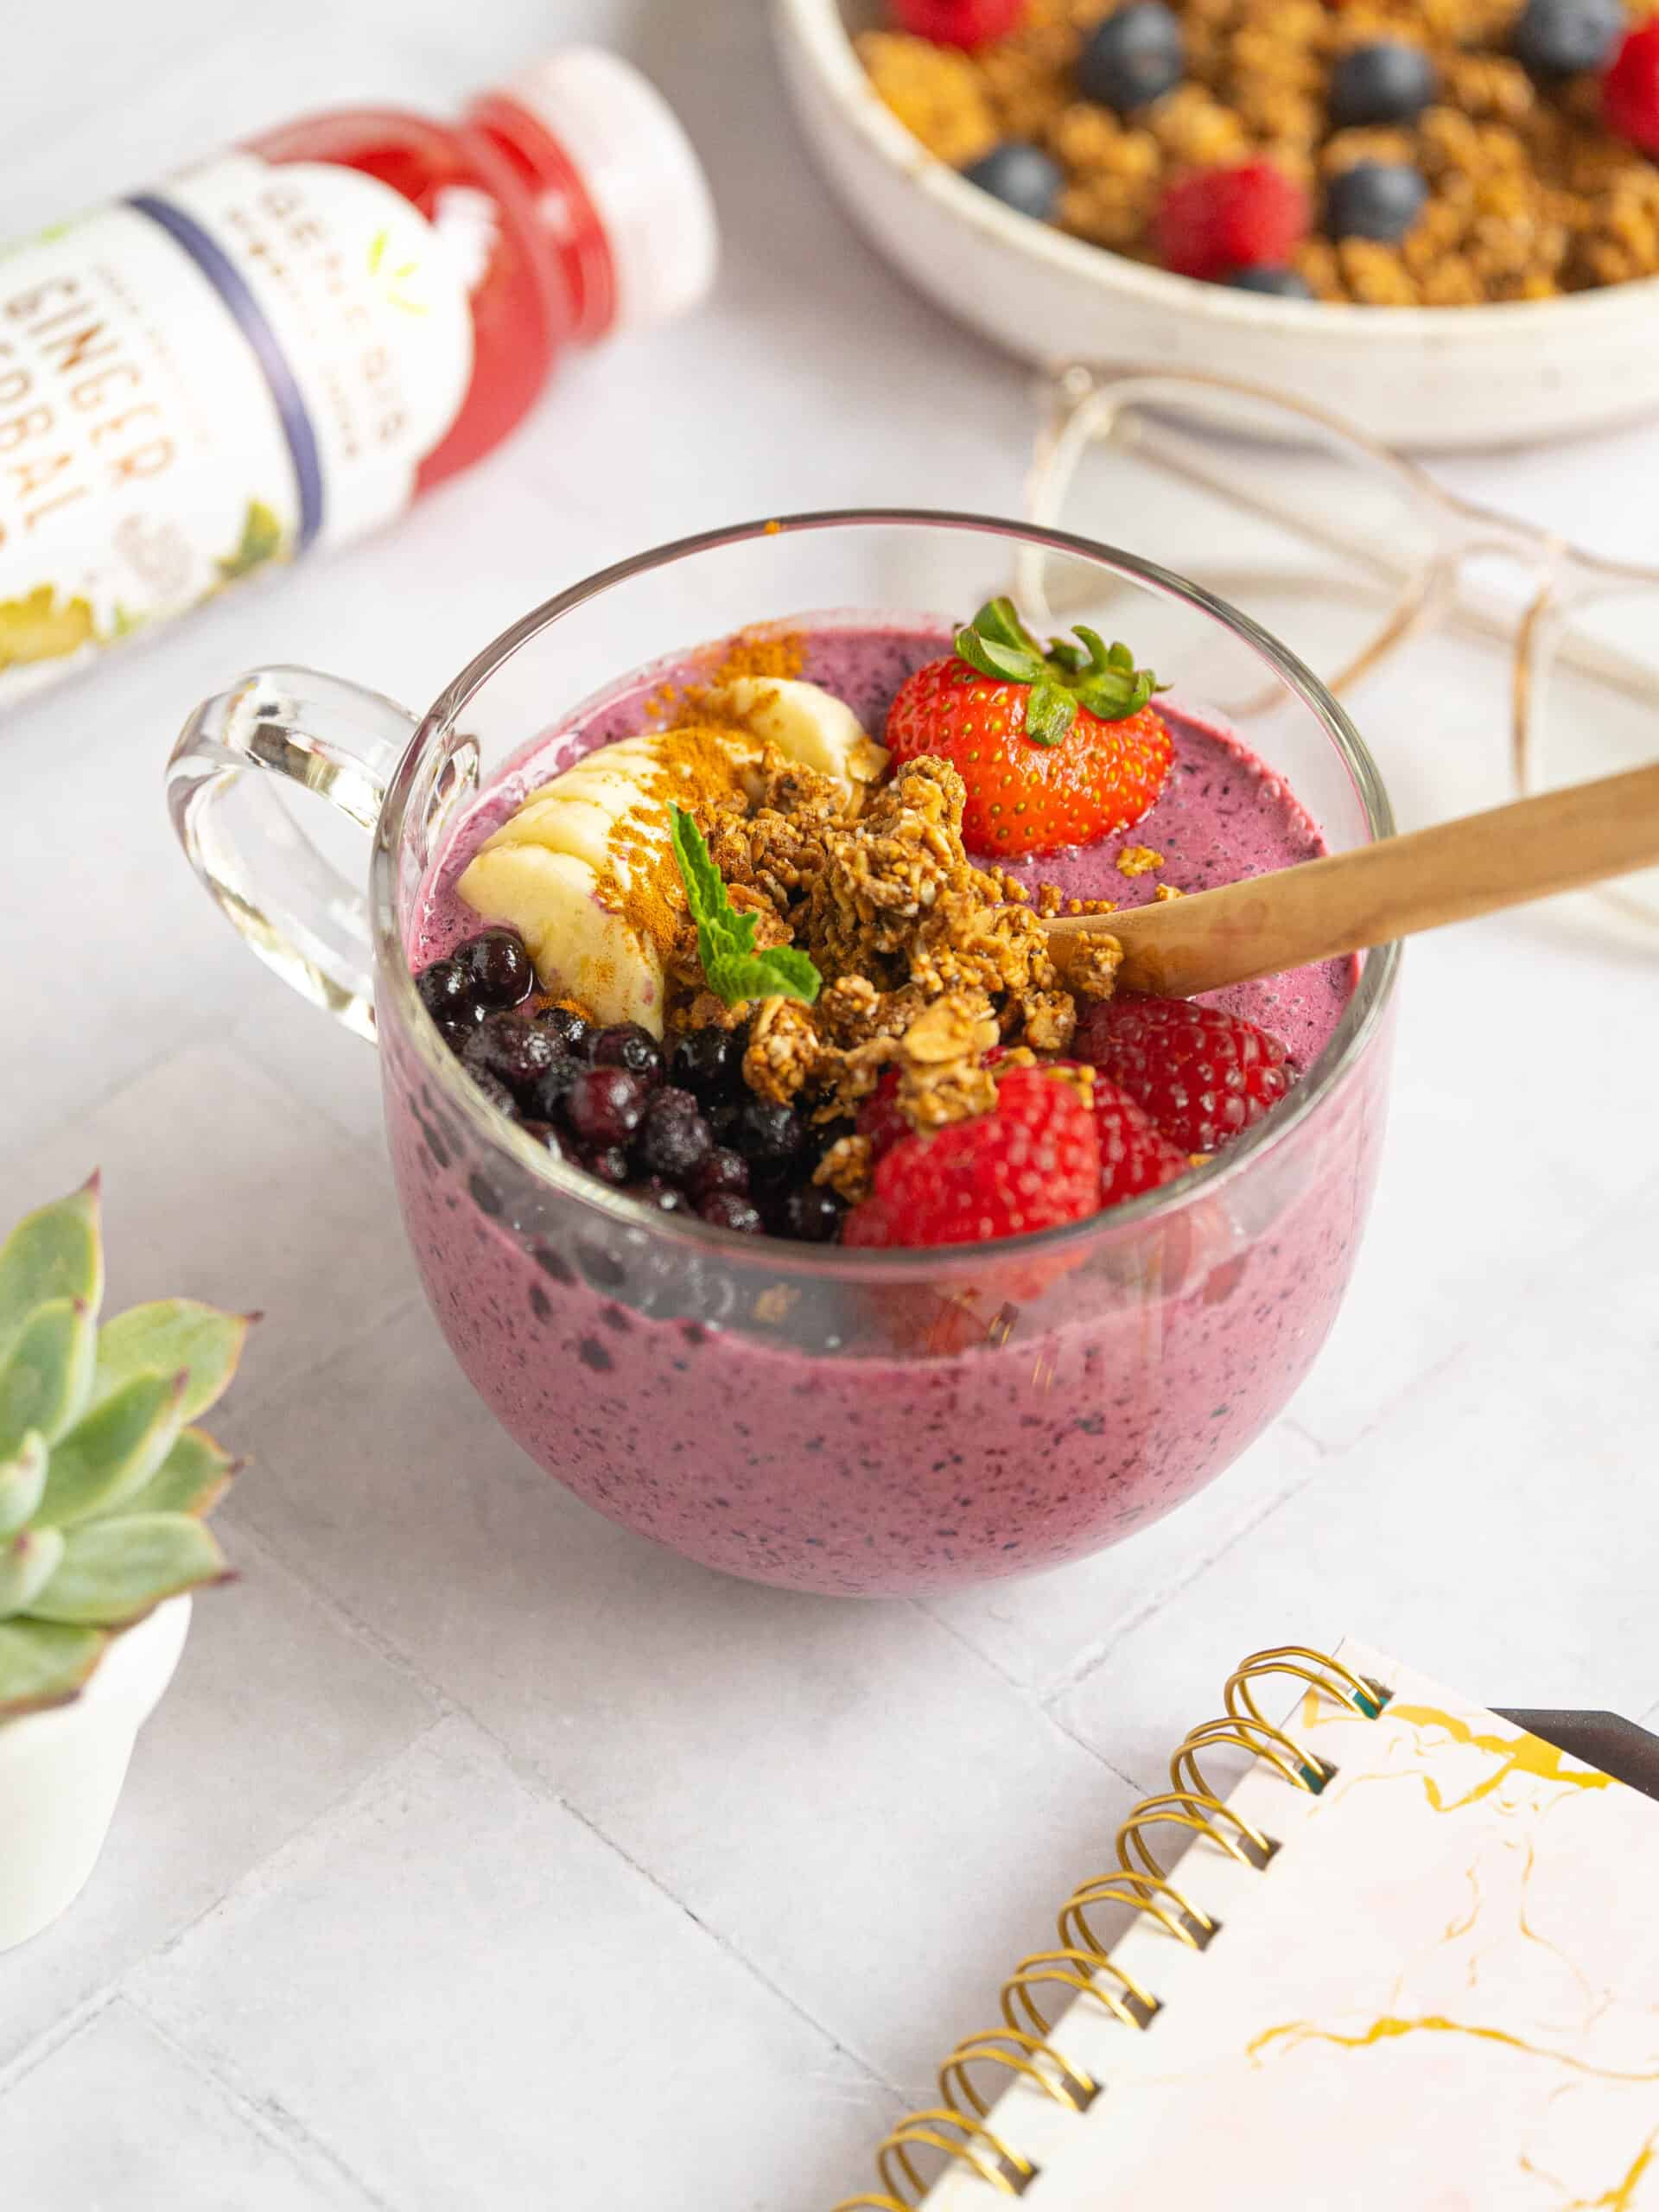 A smoothie bowl with toppings